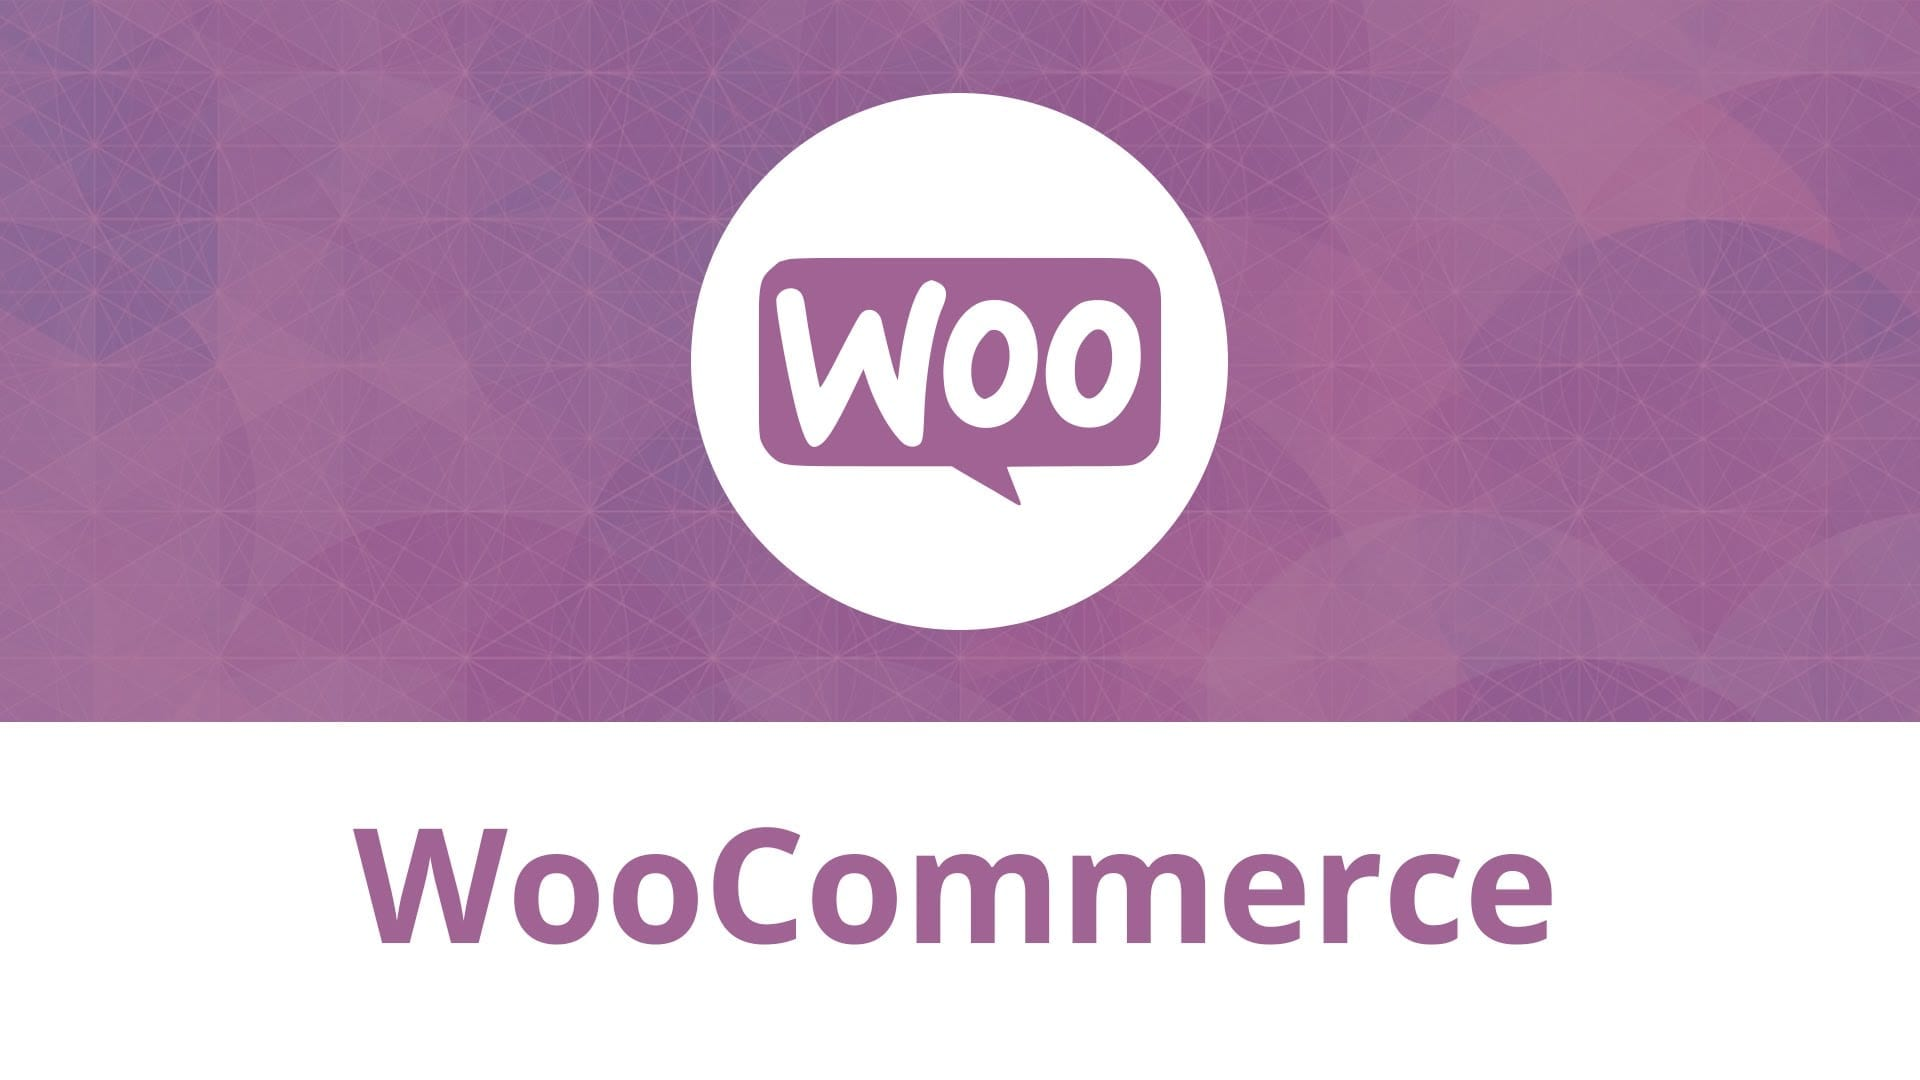 woocommerce-269-released-improves-compatibility-with-wordpress-47.jpg